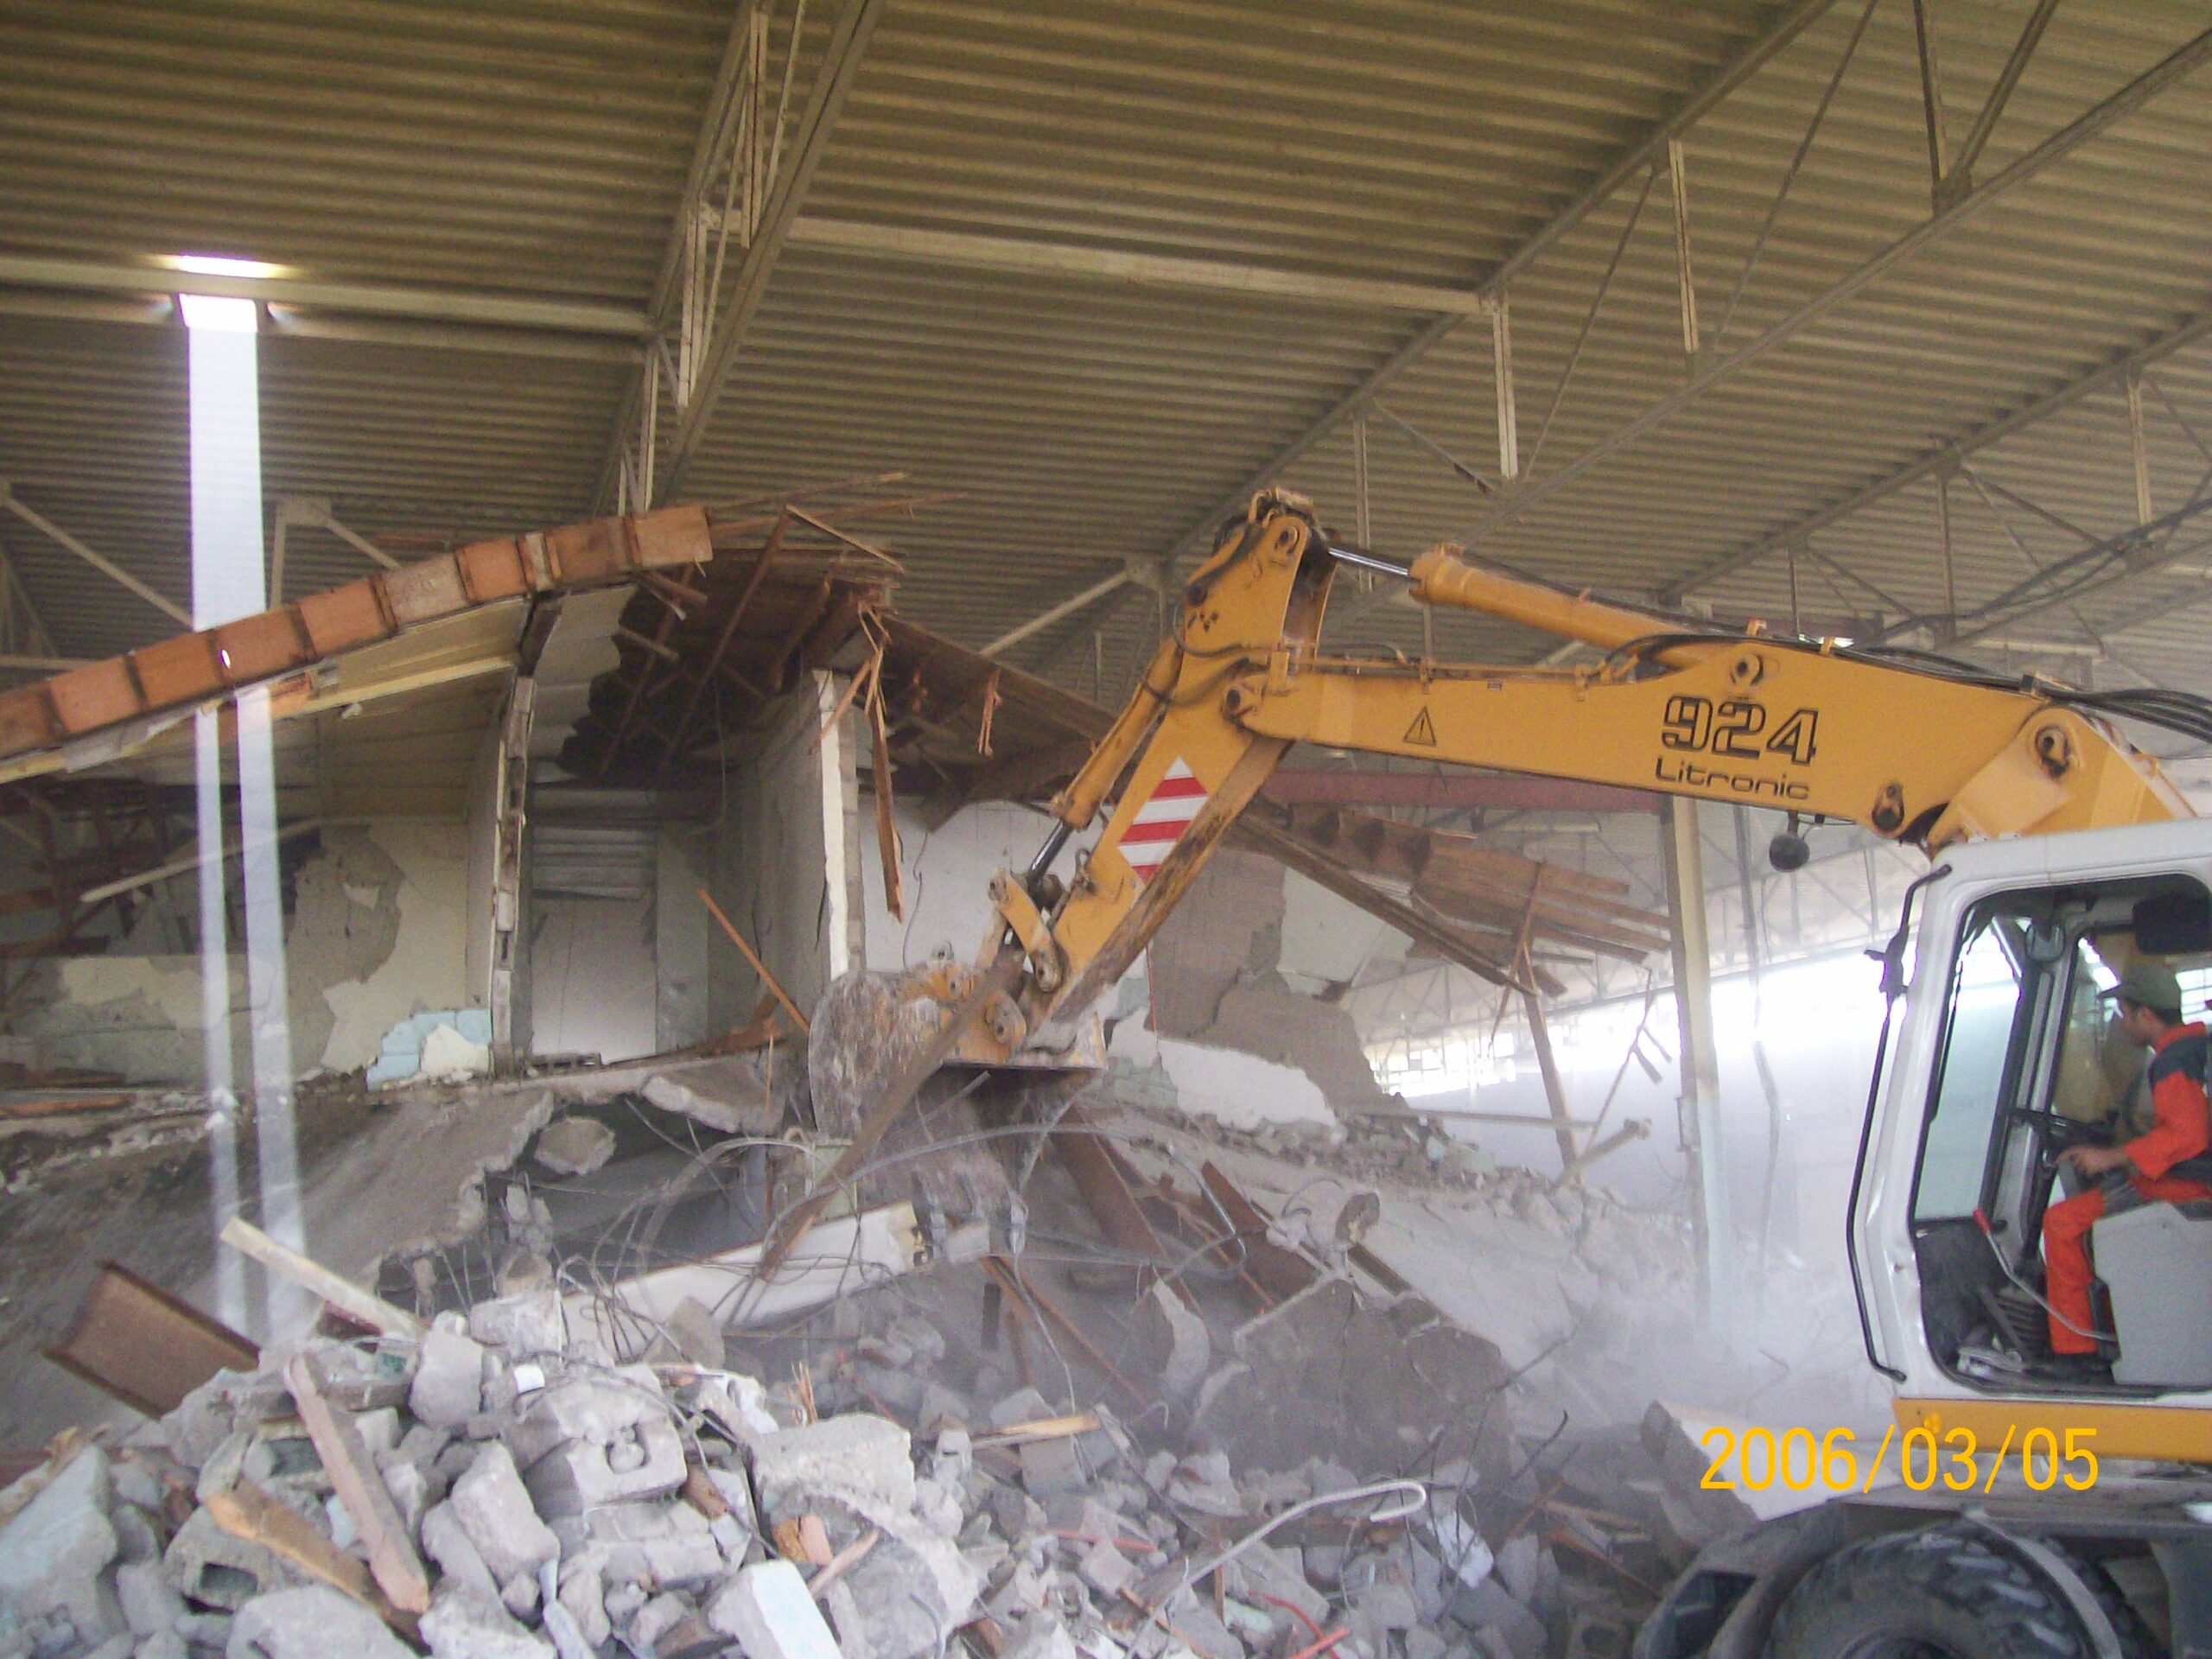 Morocco : Demolition of old structure